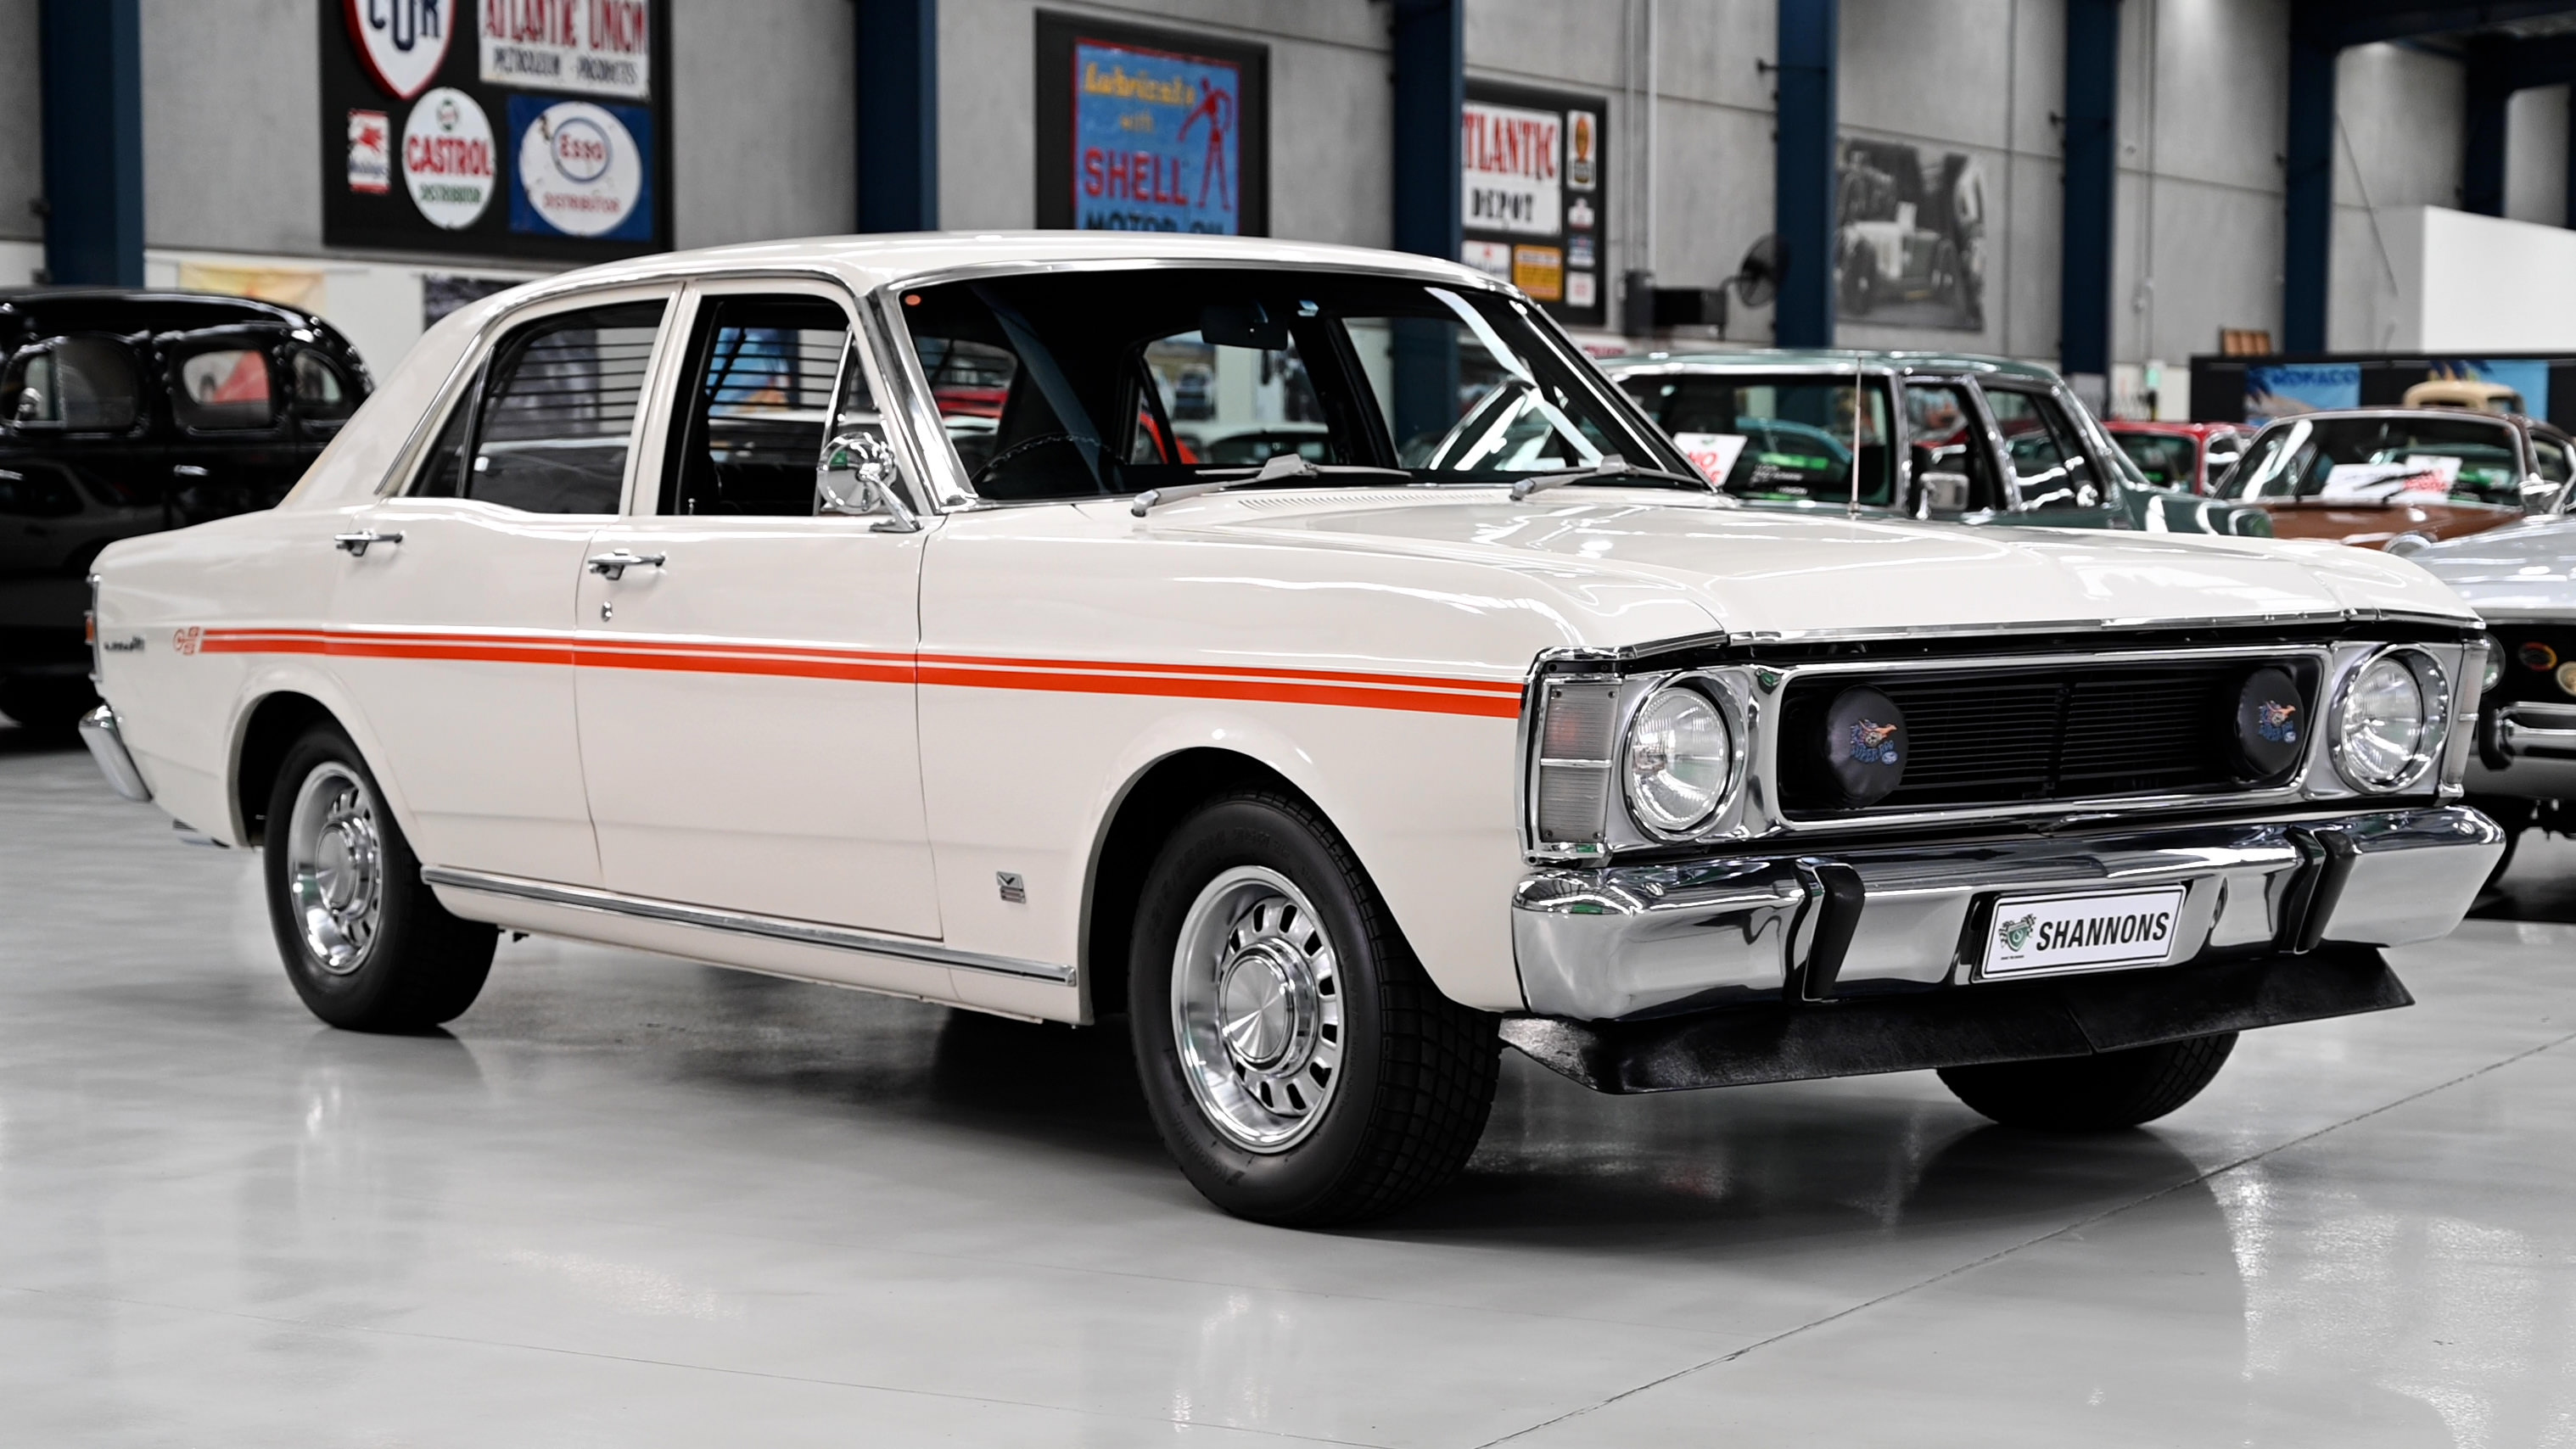 1969 Ford XW Falcon GS 302 'Manual' Sedan - 2021 Shannons Summer Timed Online Auction